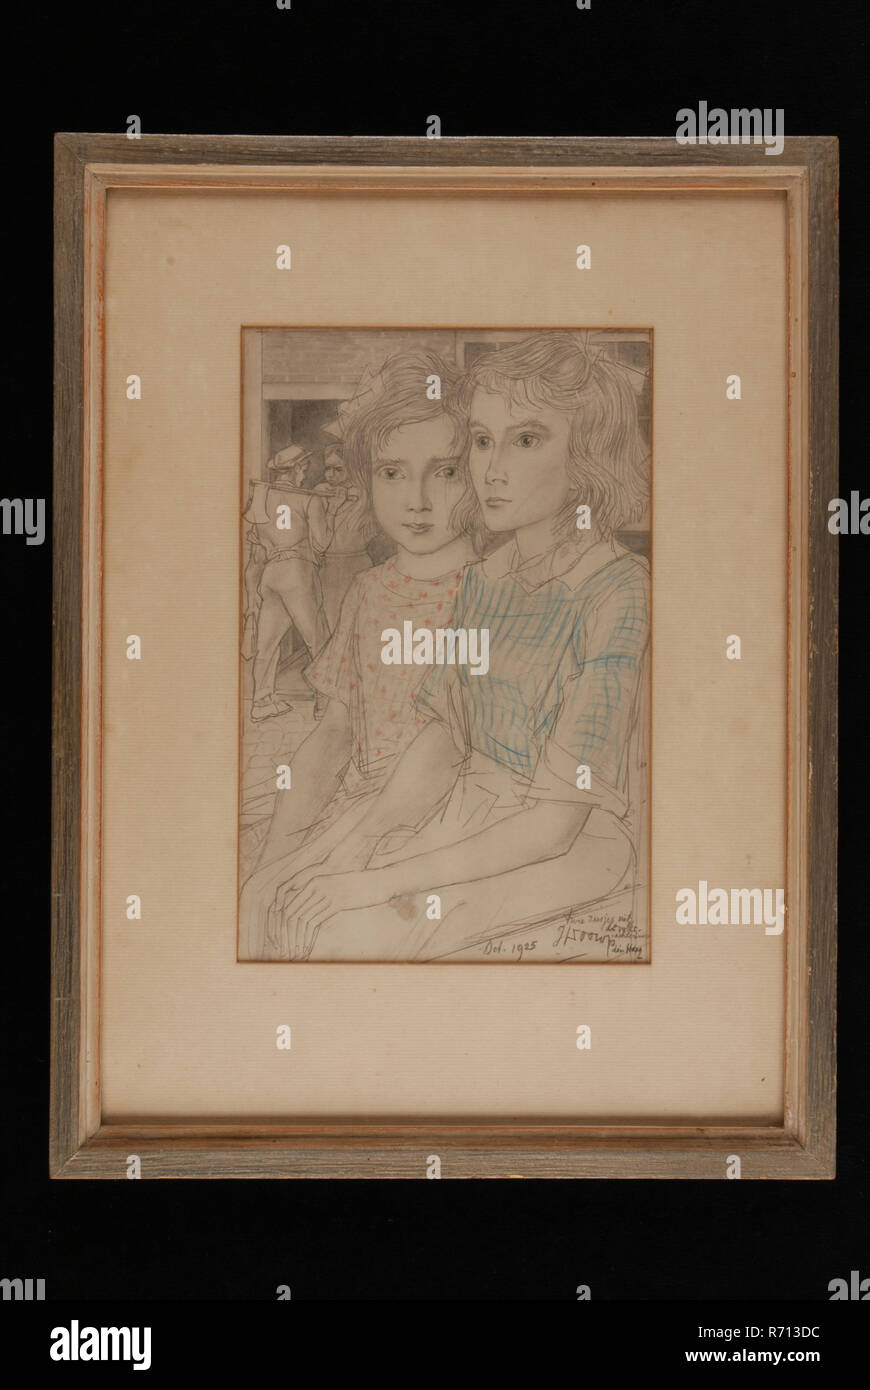 Jan Toorop, Offset printing of drawing Two sisters from the people's back neighborhood from 1925, in wooden frame, offset lithograph print images paper wood glass cardboard, size) printed lower right signature and date: Oct. 1925 - two sisters from the people's back neighborhood J. Toorop the Hague. - Stock Image